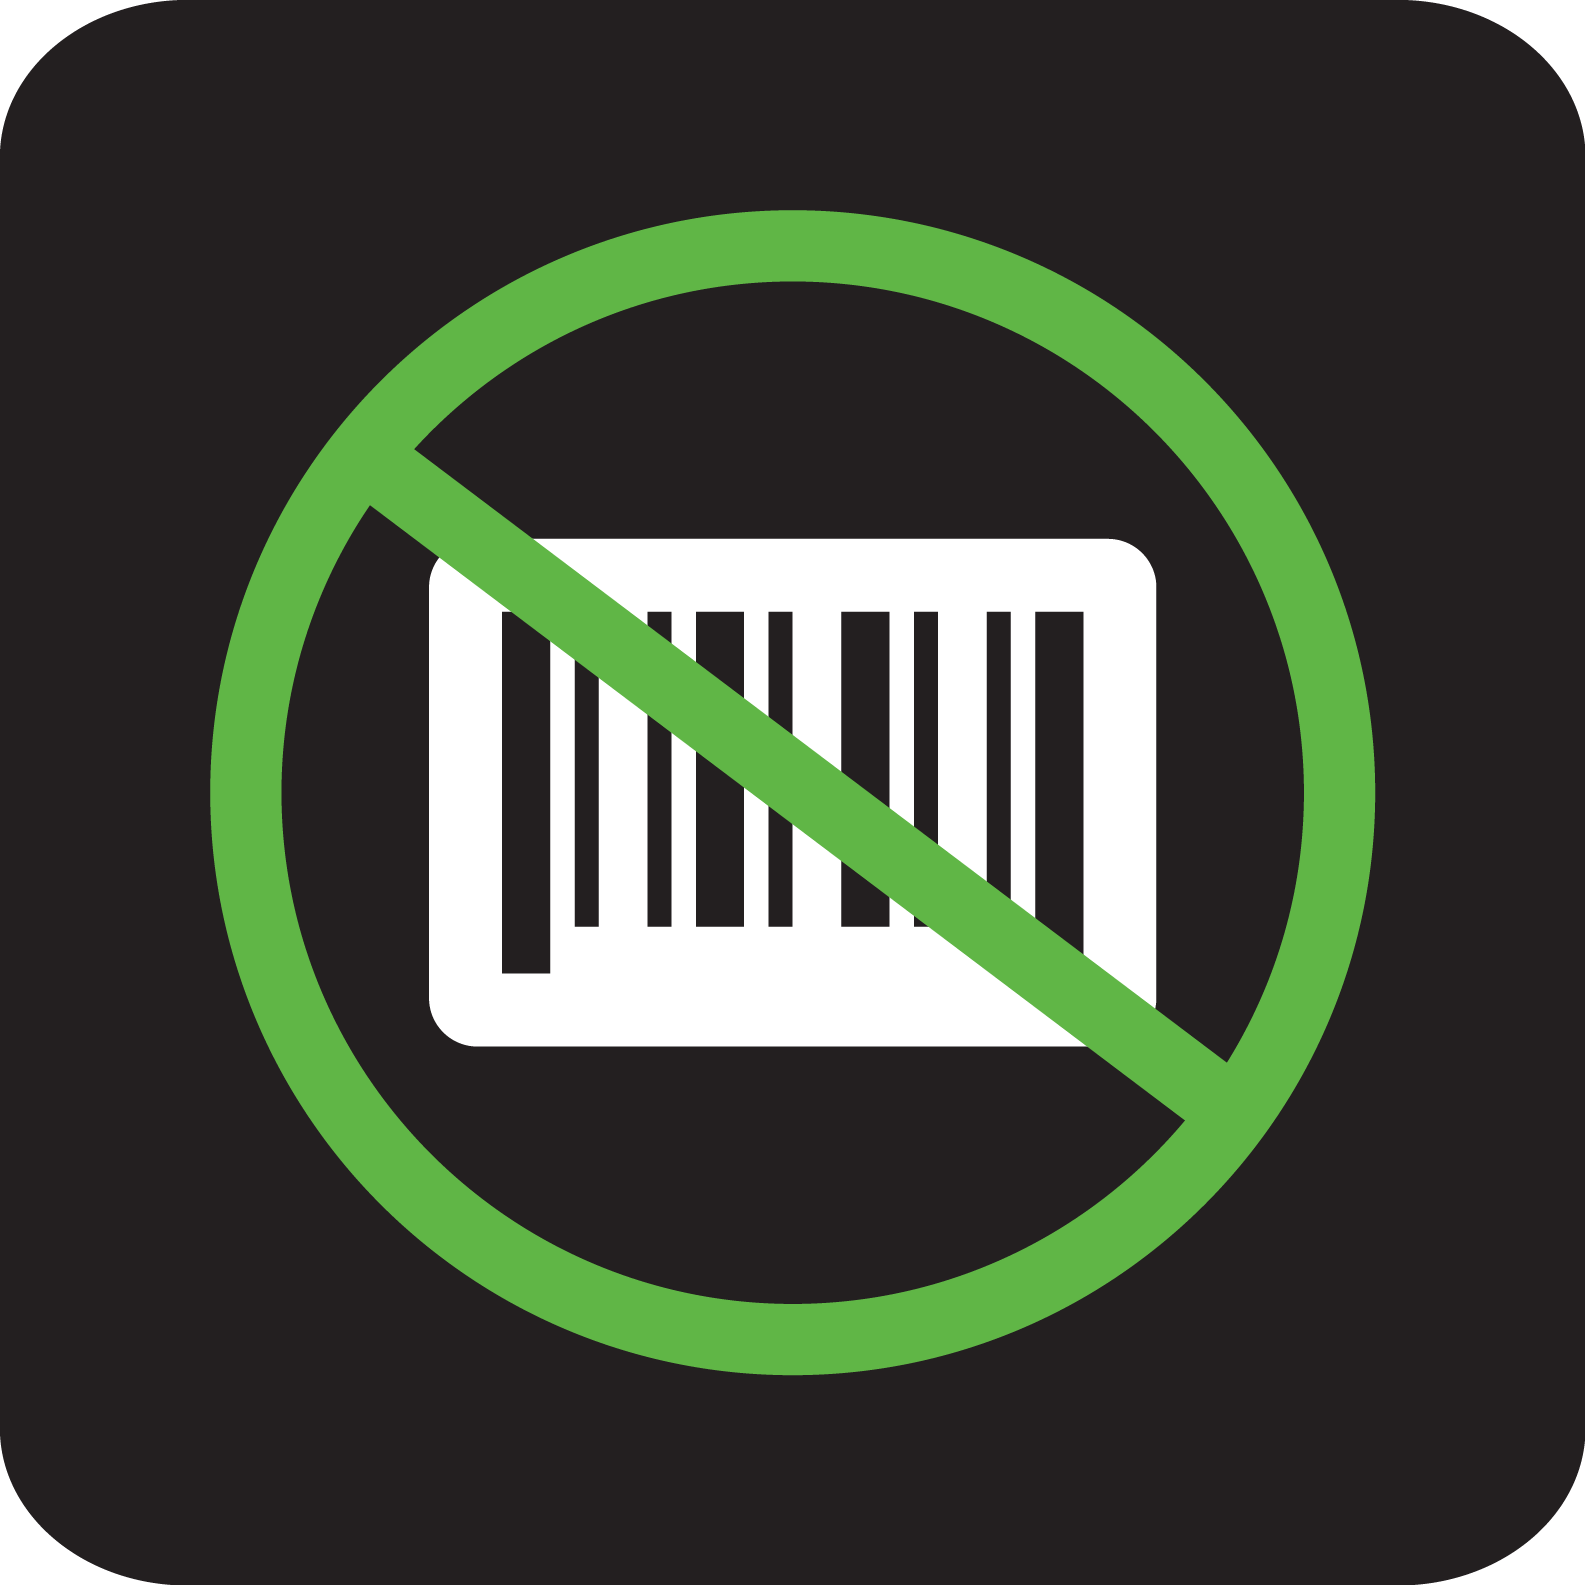 defective-barcode-graphic